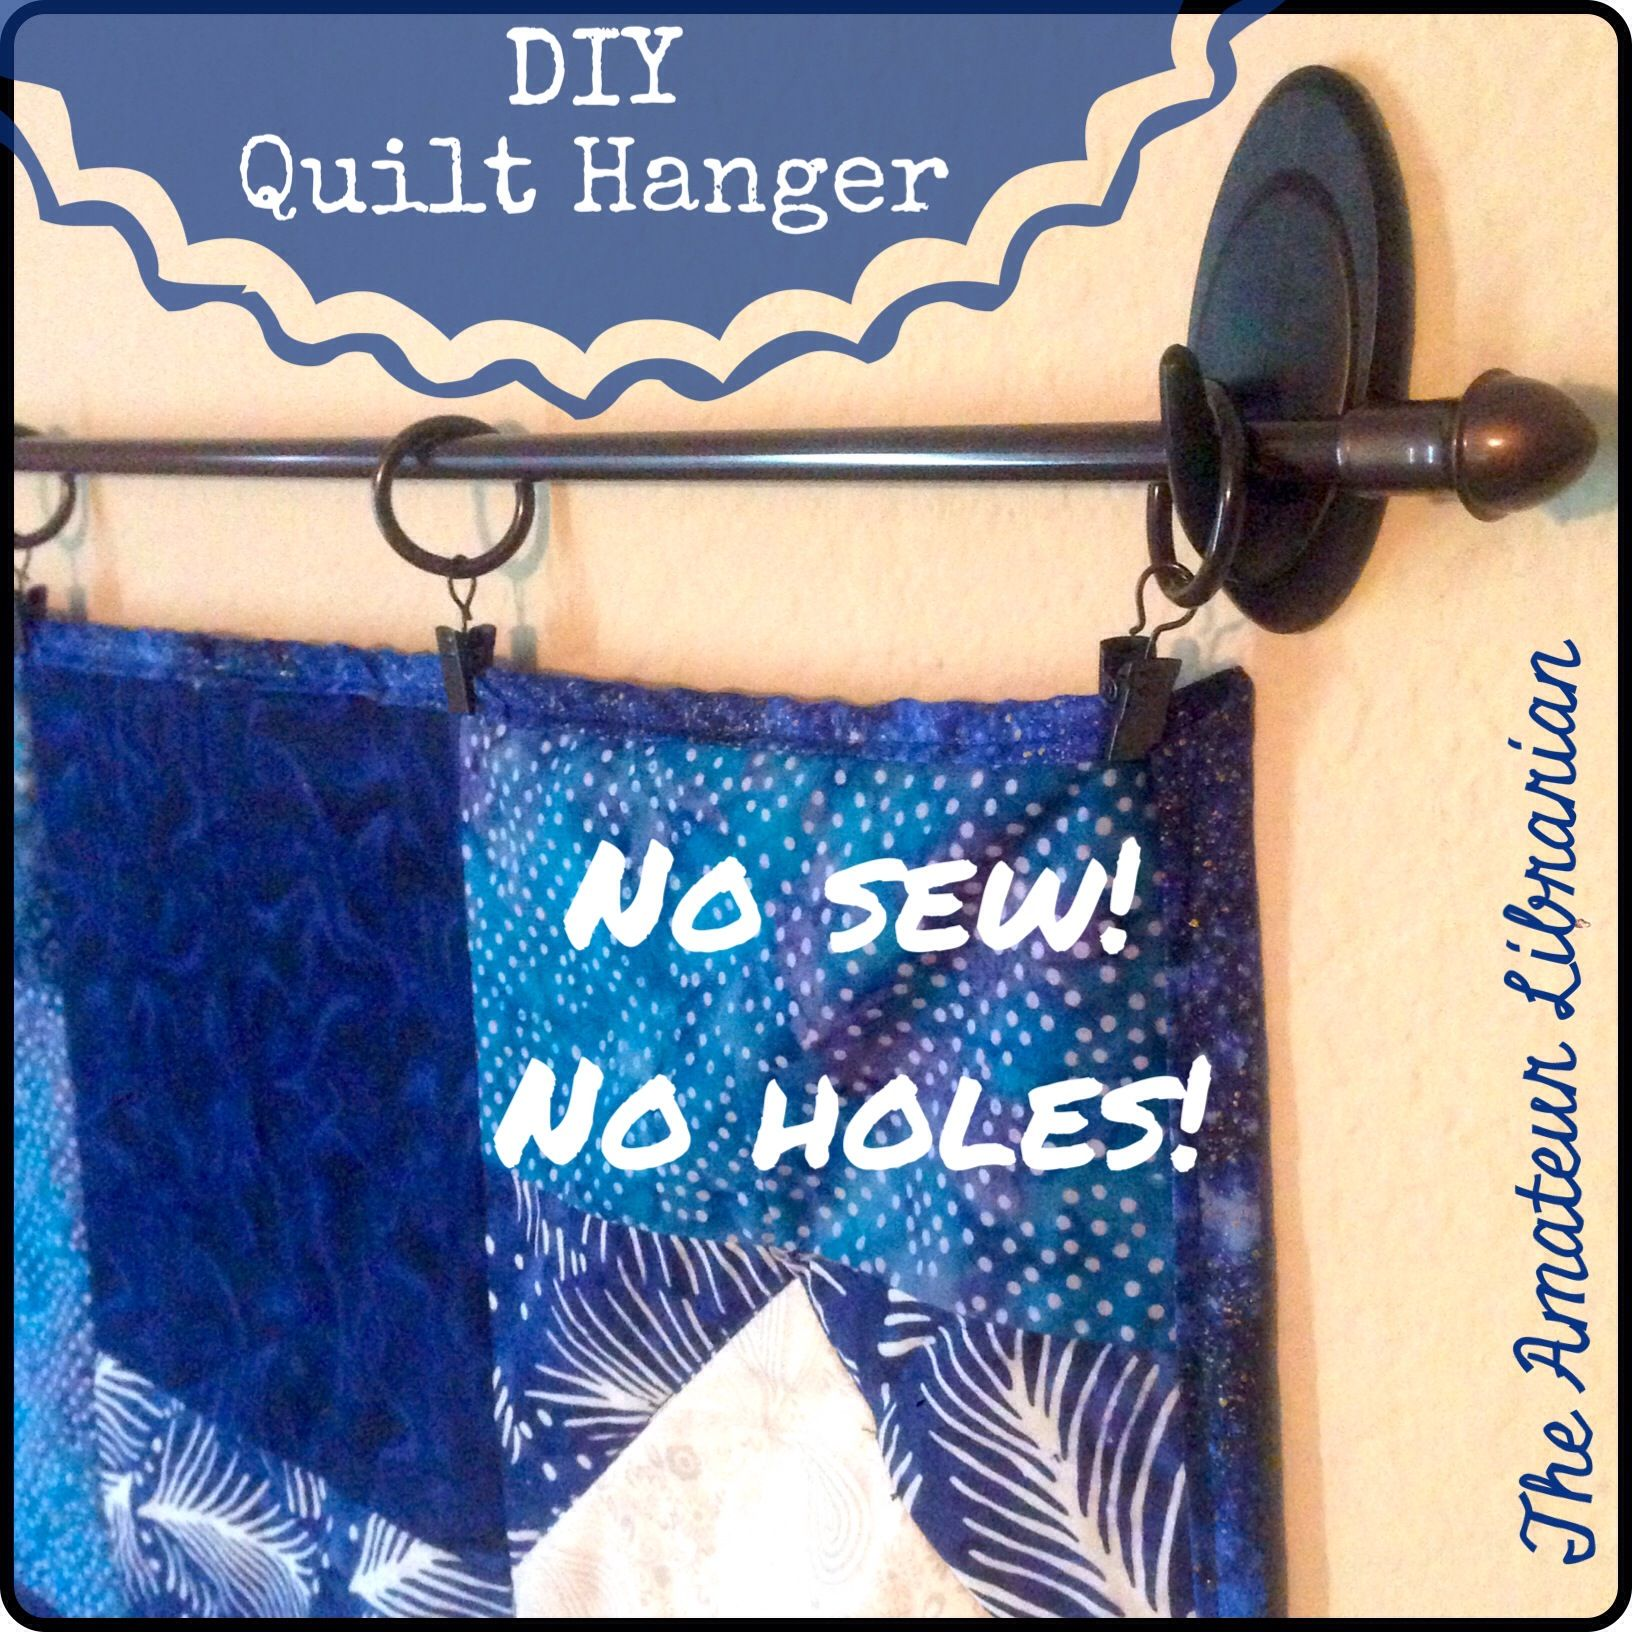 Yep, two steps – no sewing hanging pockets or sleeves to the quilt ... : quilt hangers metal - Adamdwight.com